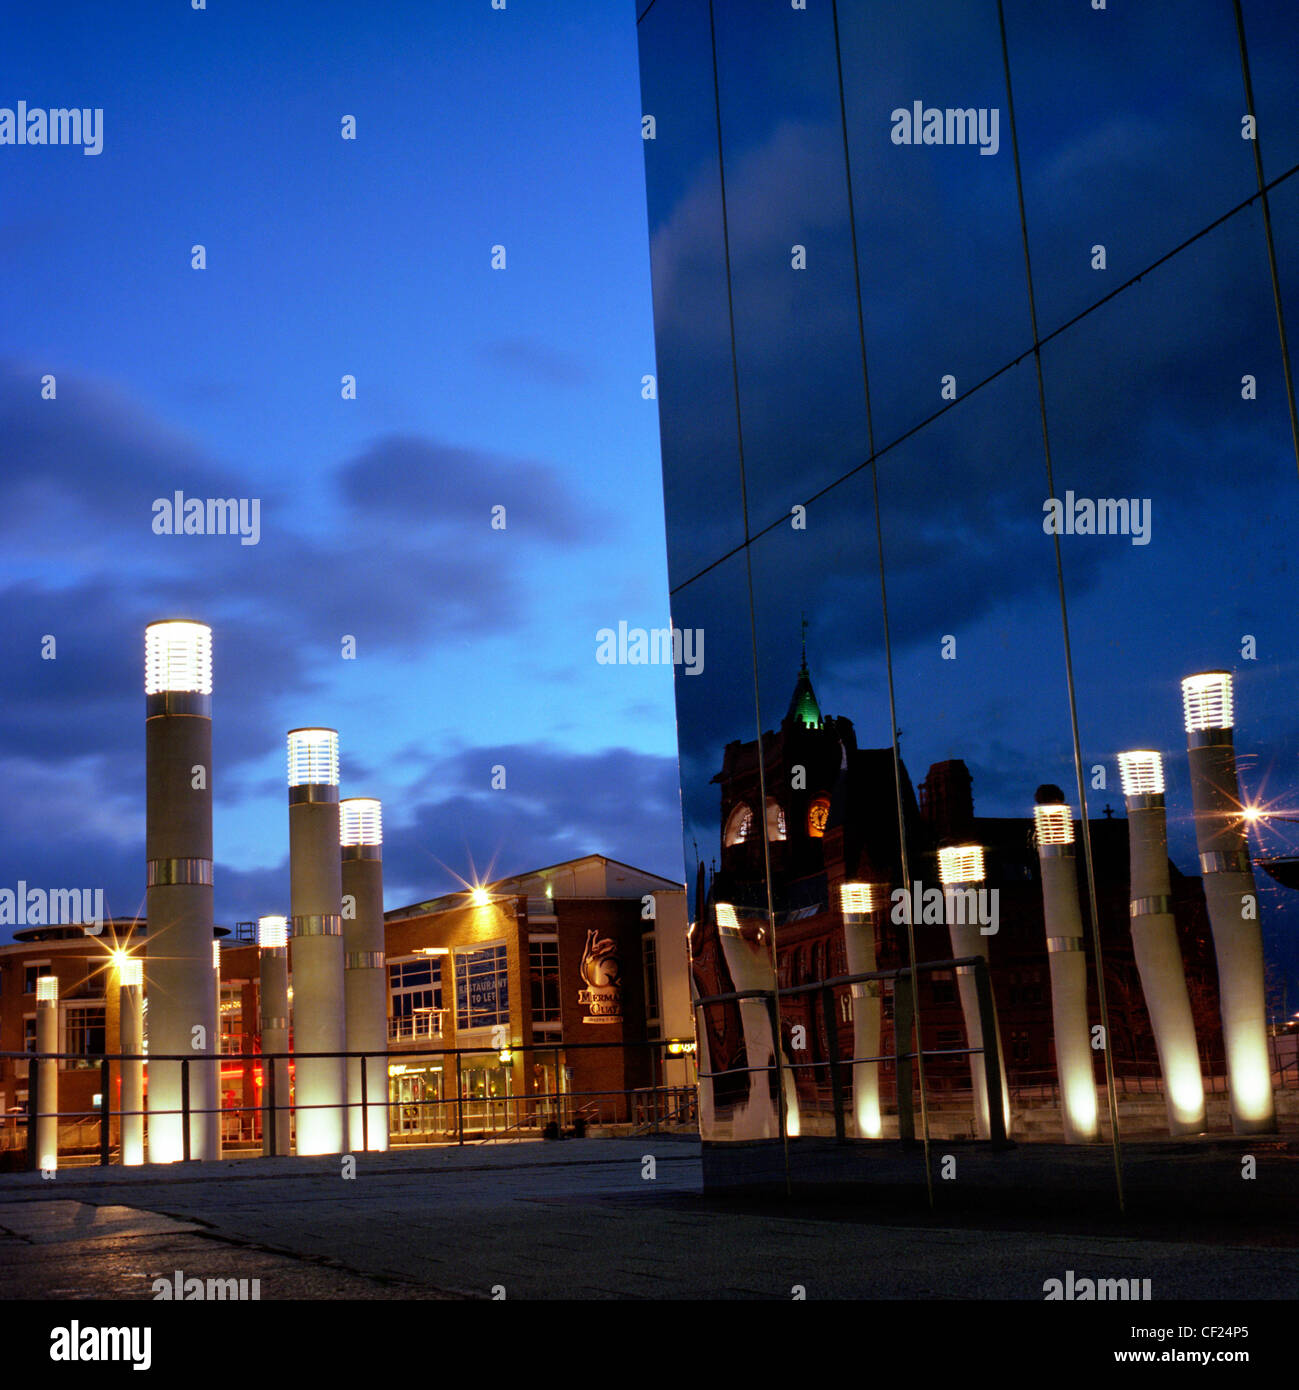 The mirrored tower in front of the Wales Millennium Centre with lights reflected. Opened in 2004, it is a centre - Stock Image